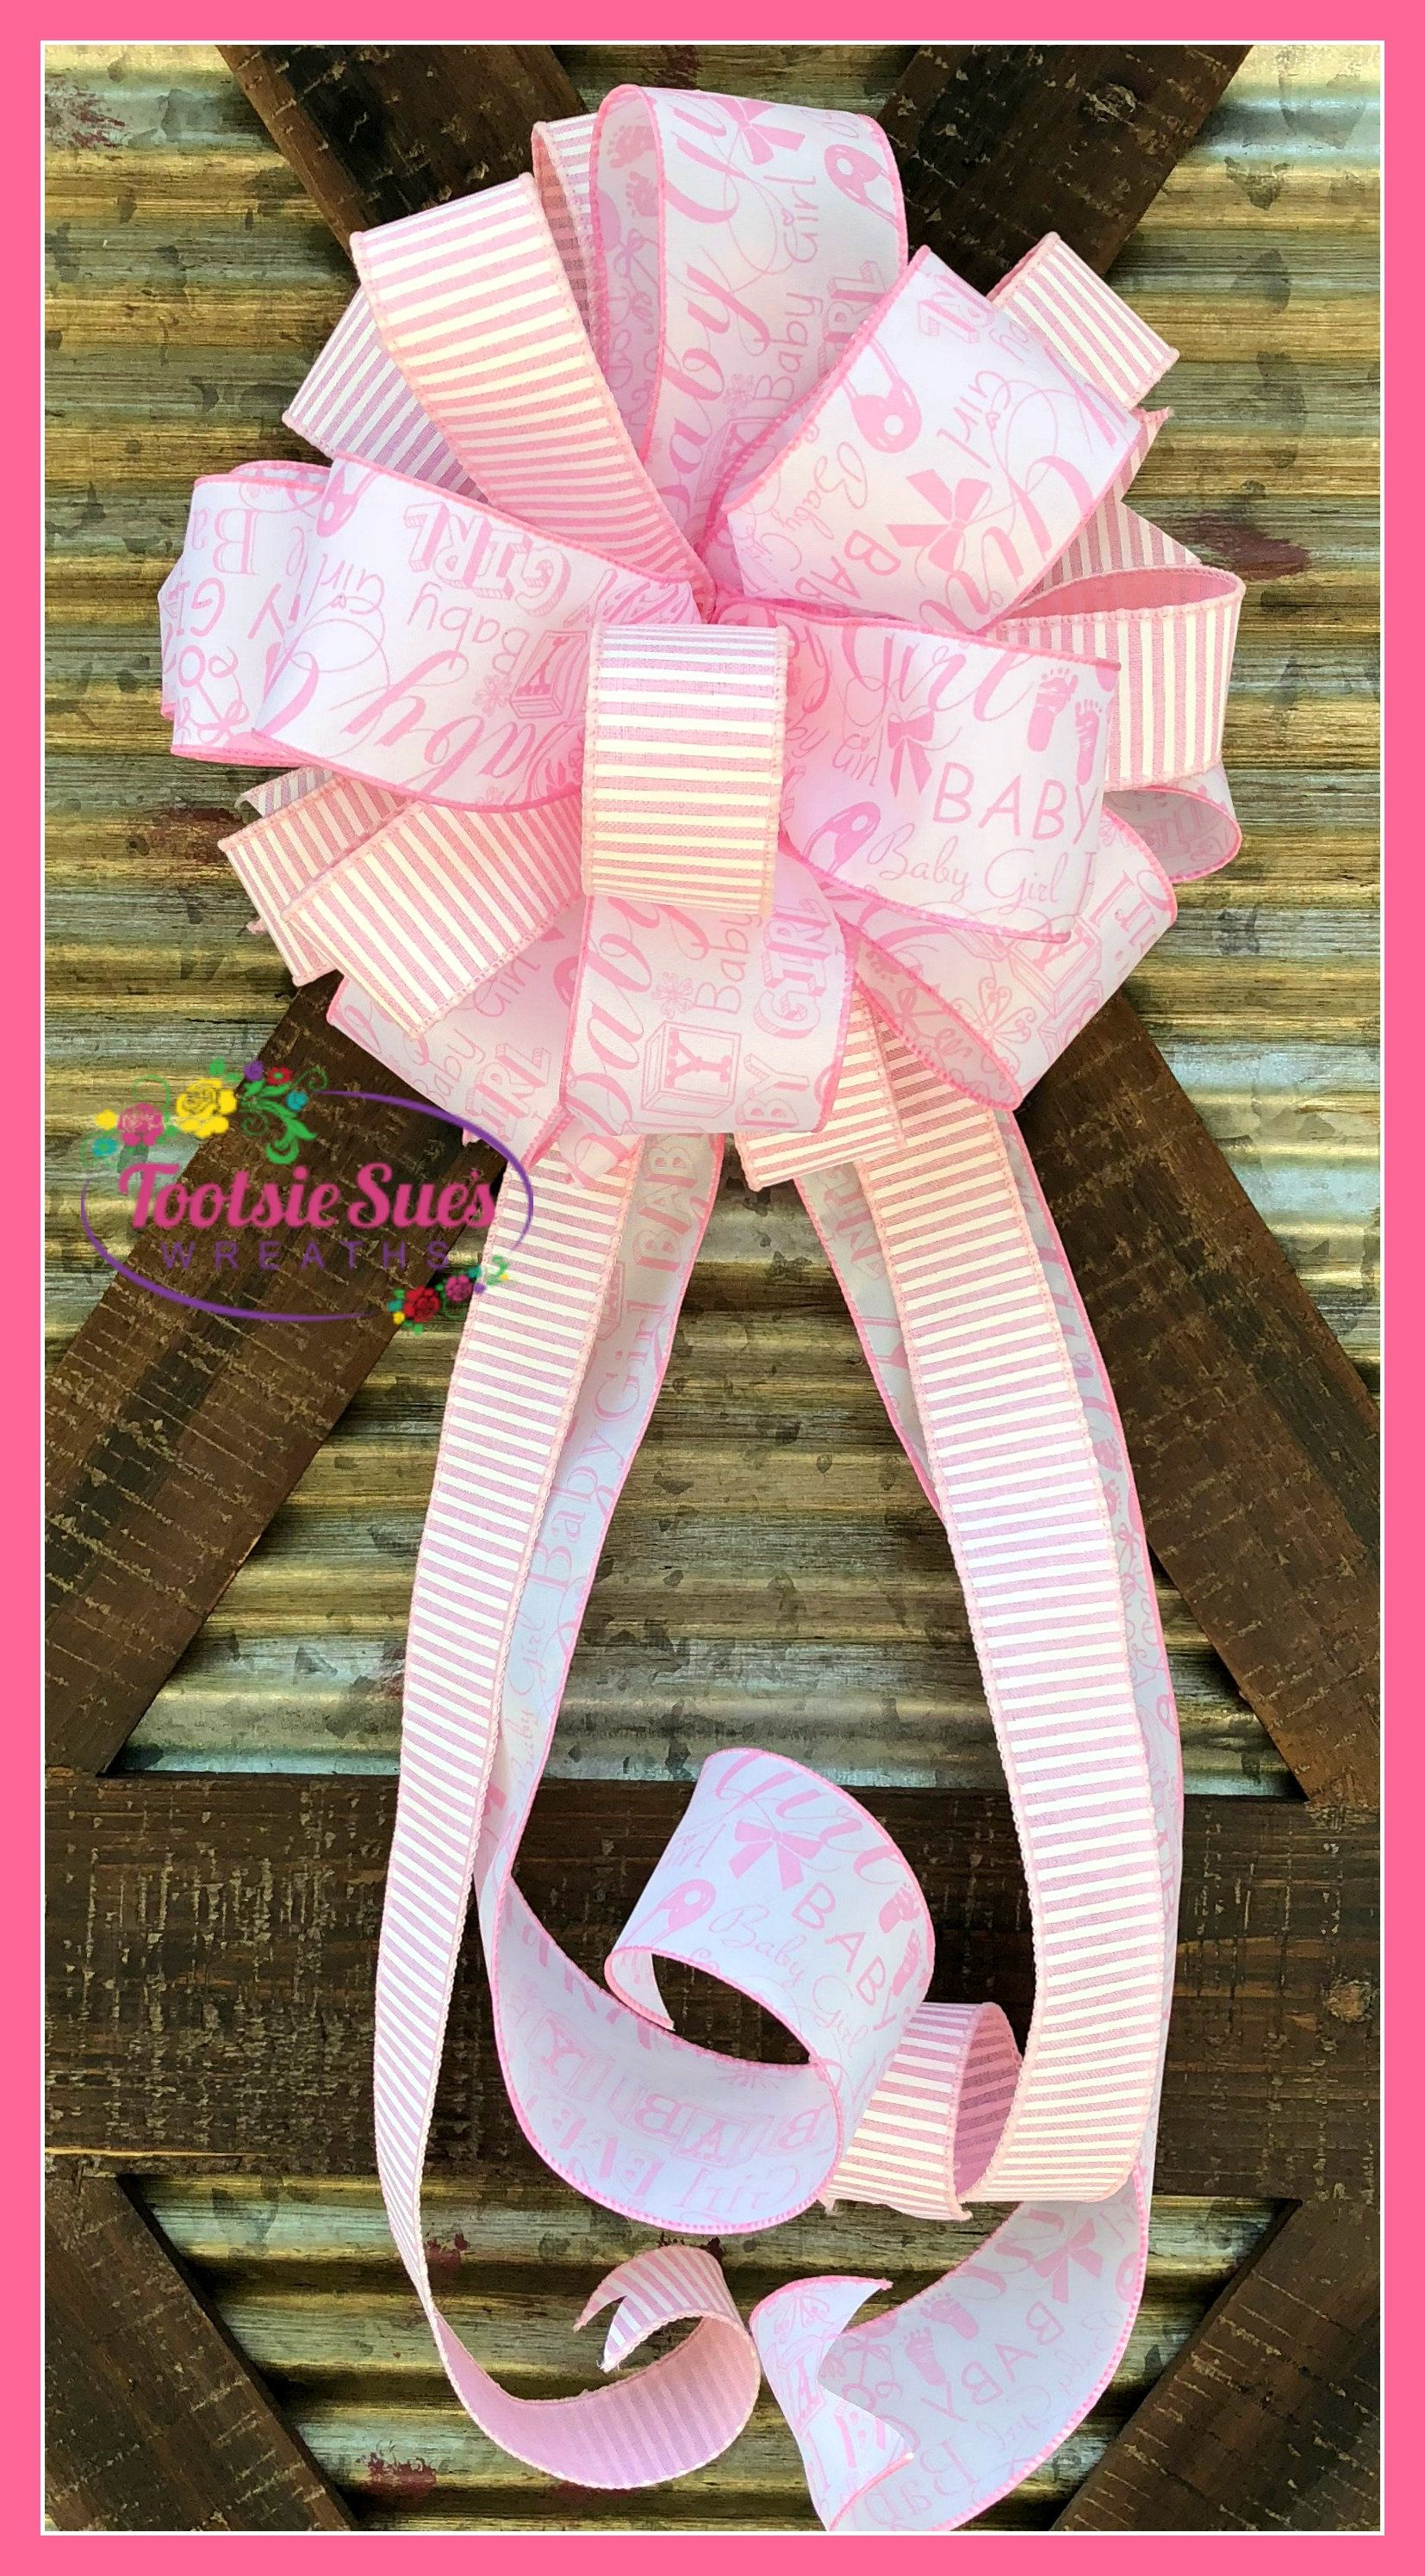 Baby girl bow package gift bow gift bow baby shower bow